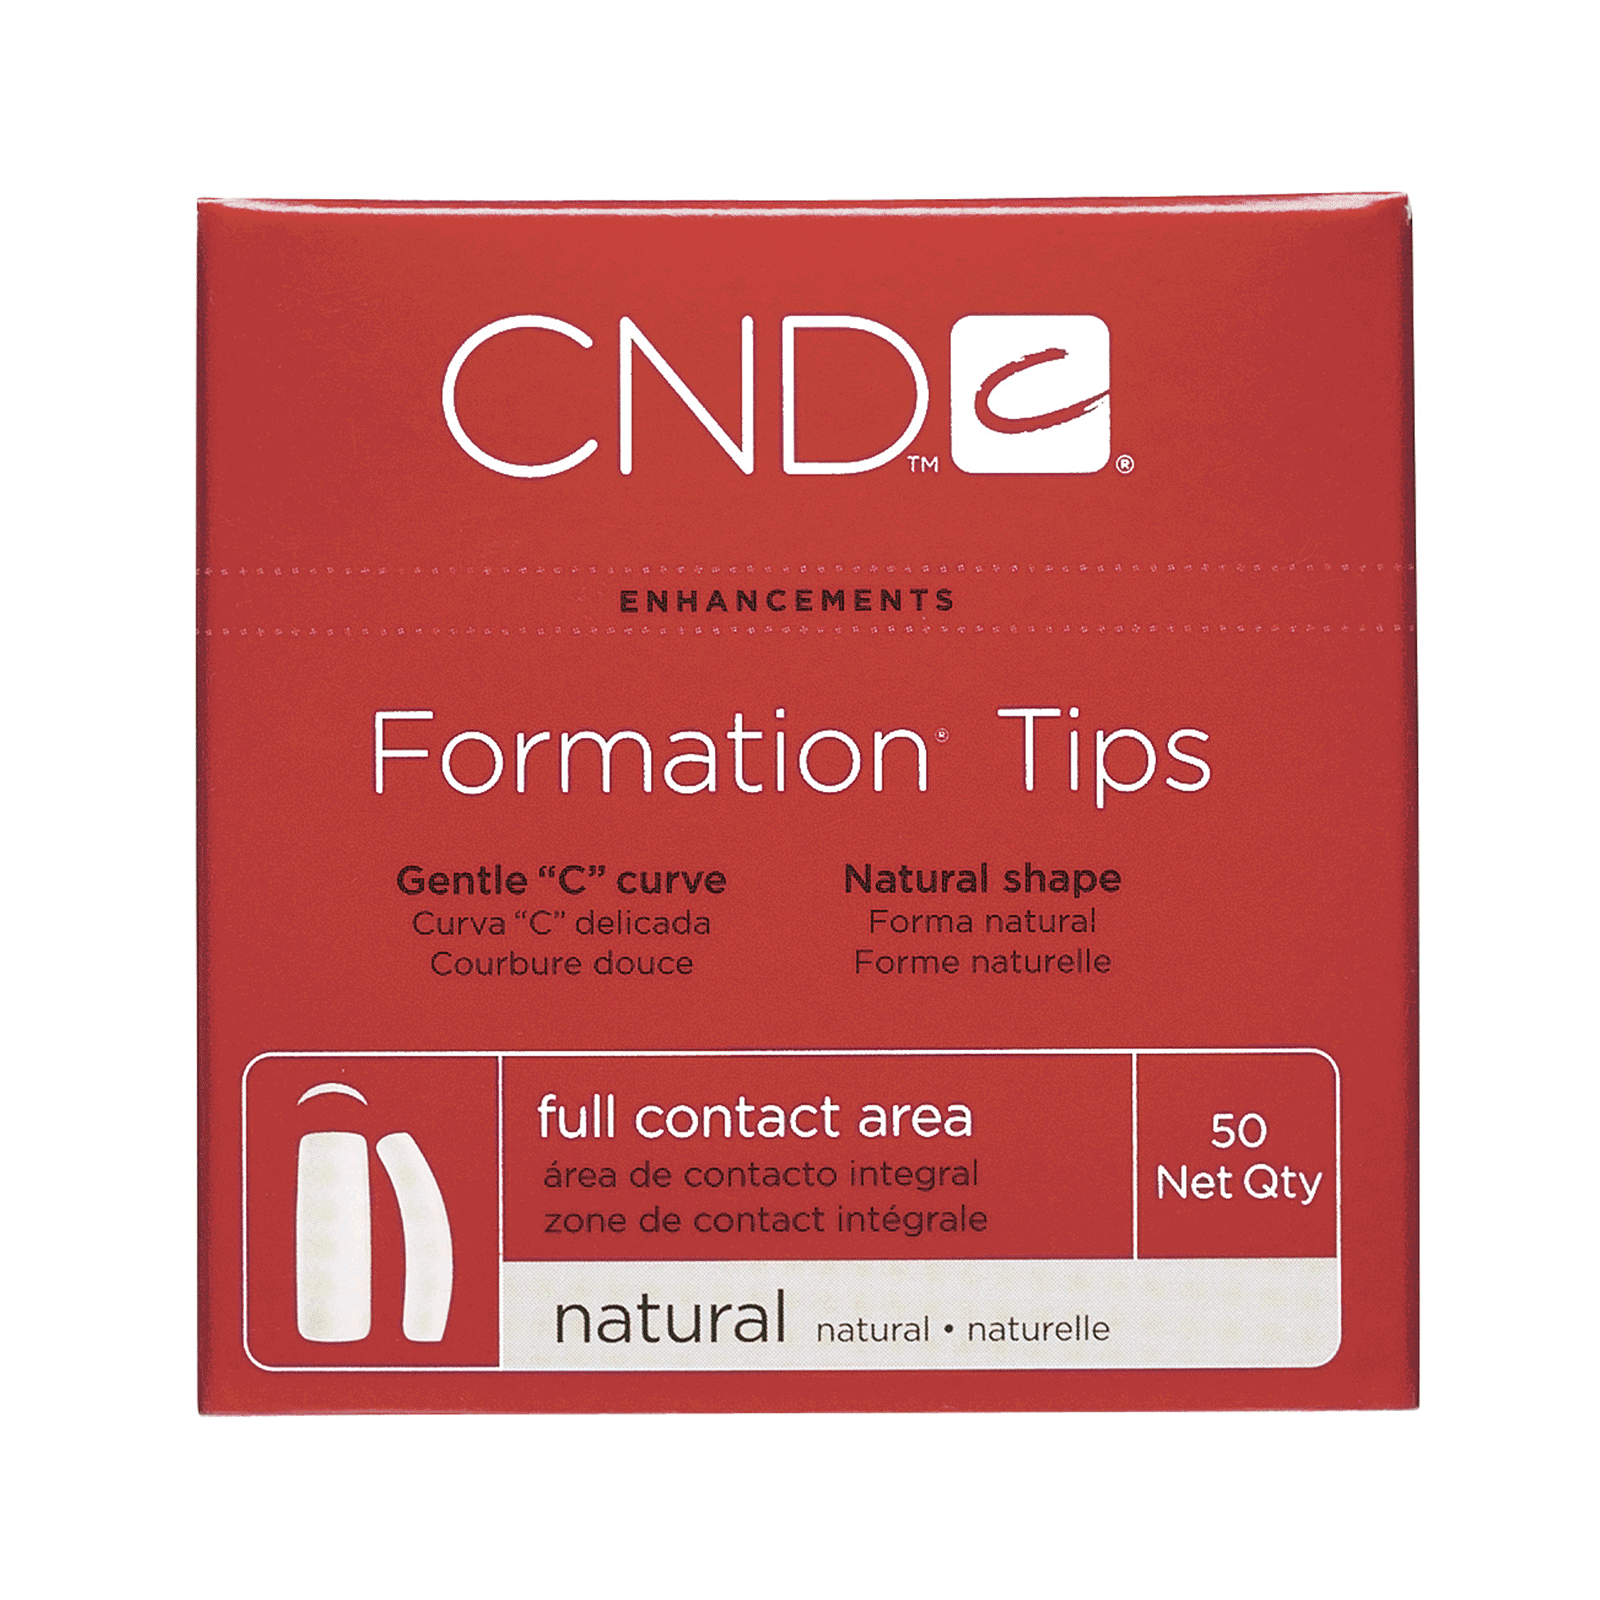 Formation Tips #7